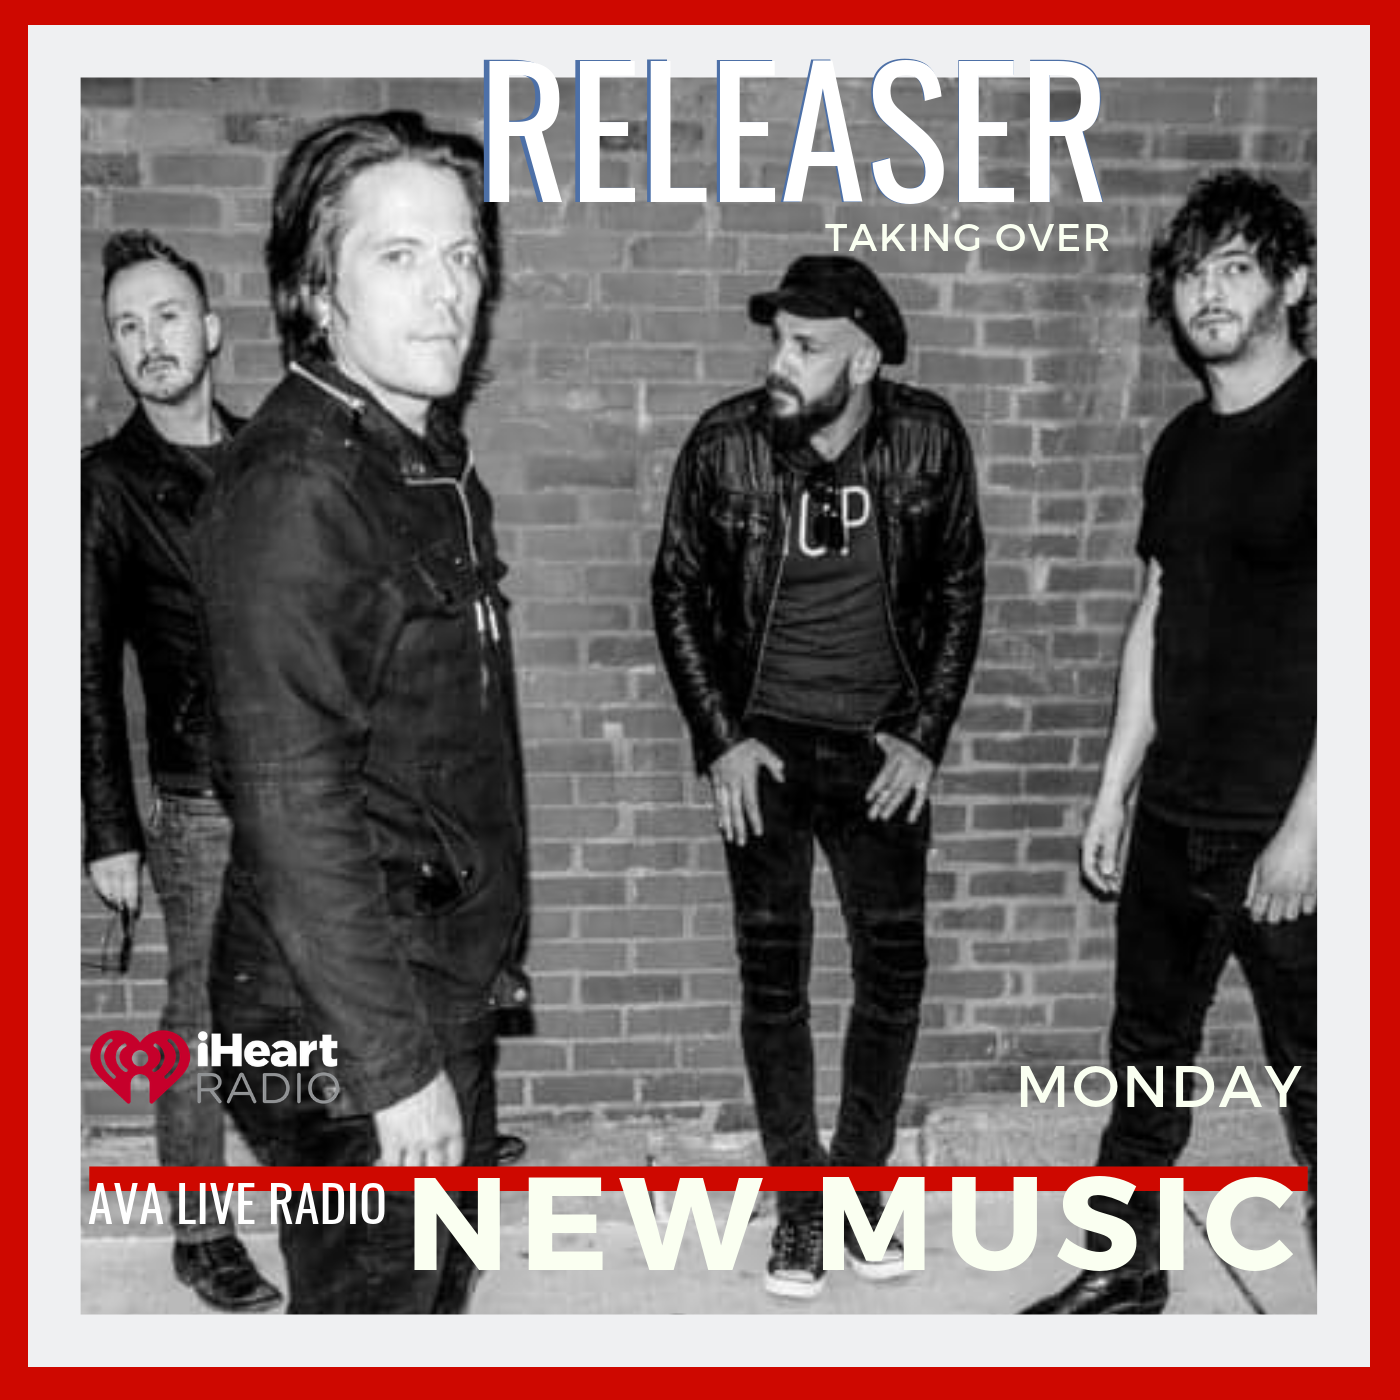 RELEASER avaliveradio New music monday.png